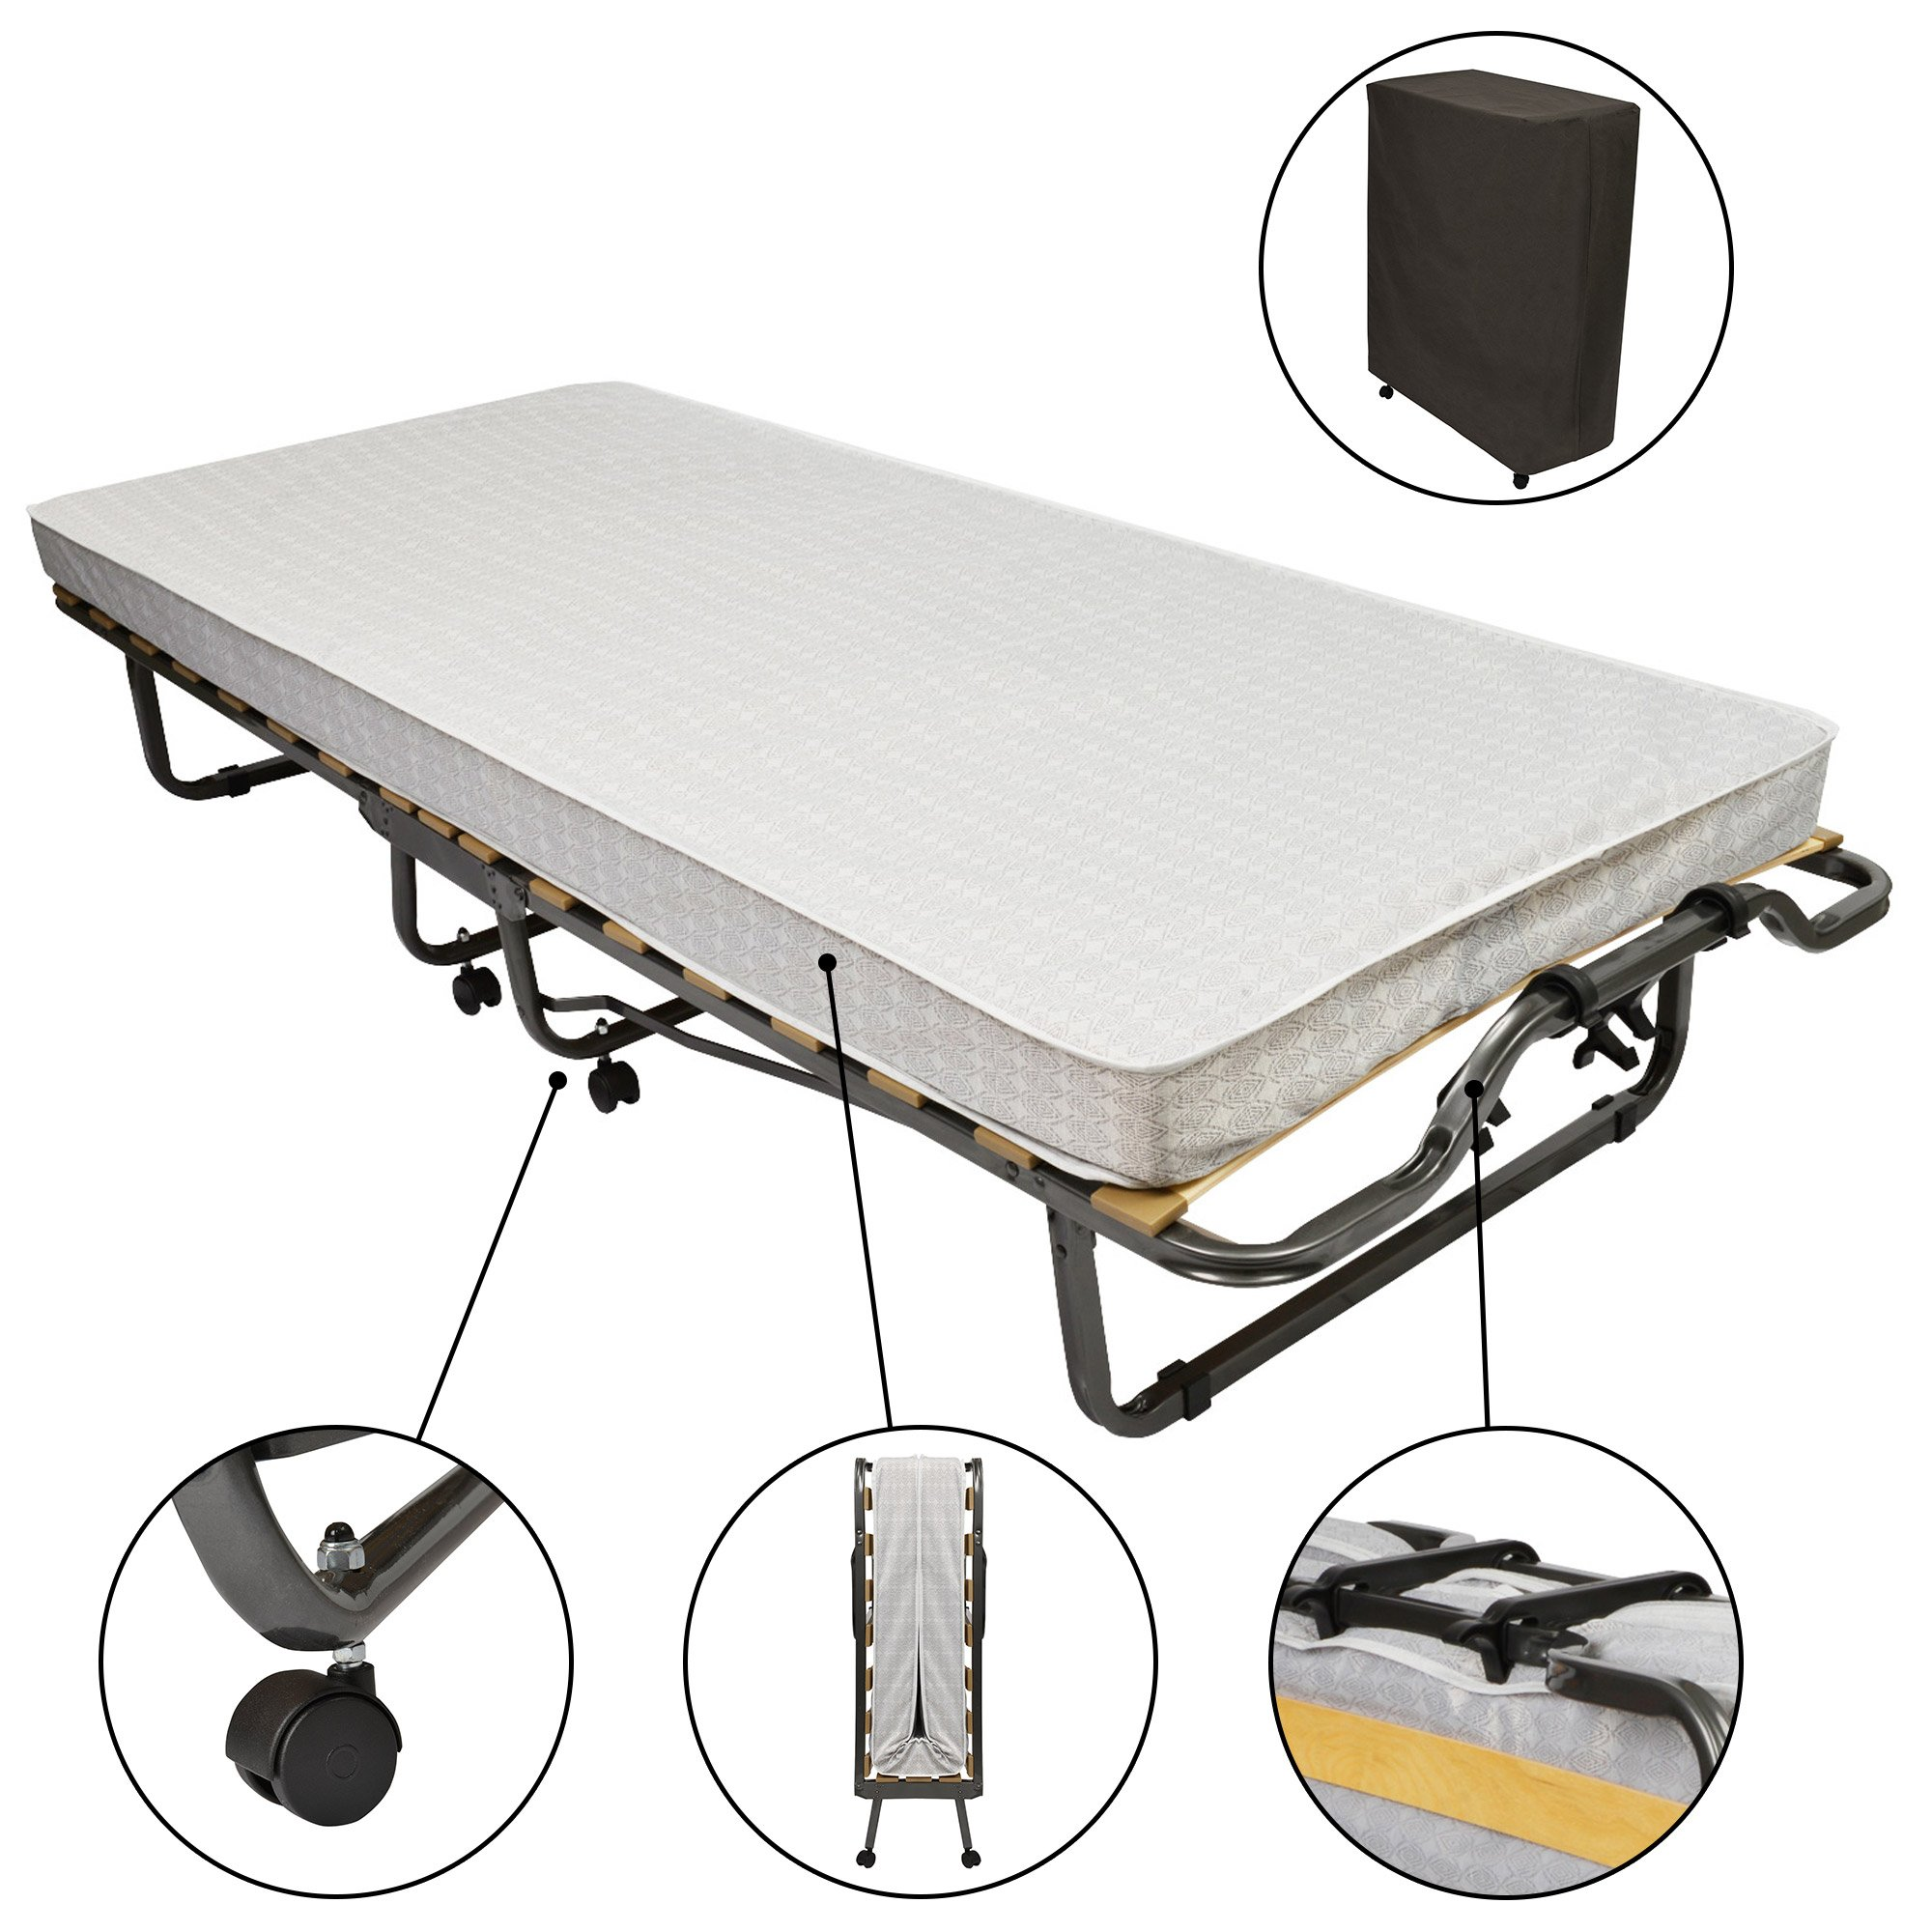 Beautissu Cama Plegable de Invitados Venetia - 90x200 cm - Estable Armadura de Metal - con